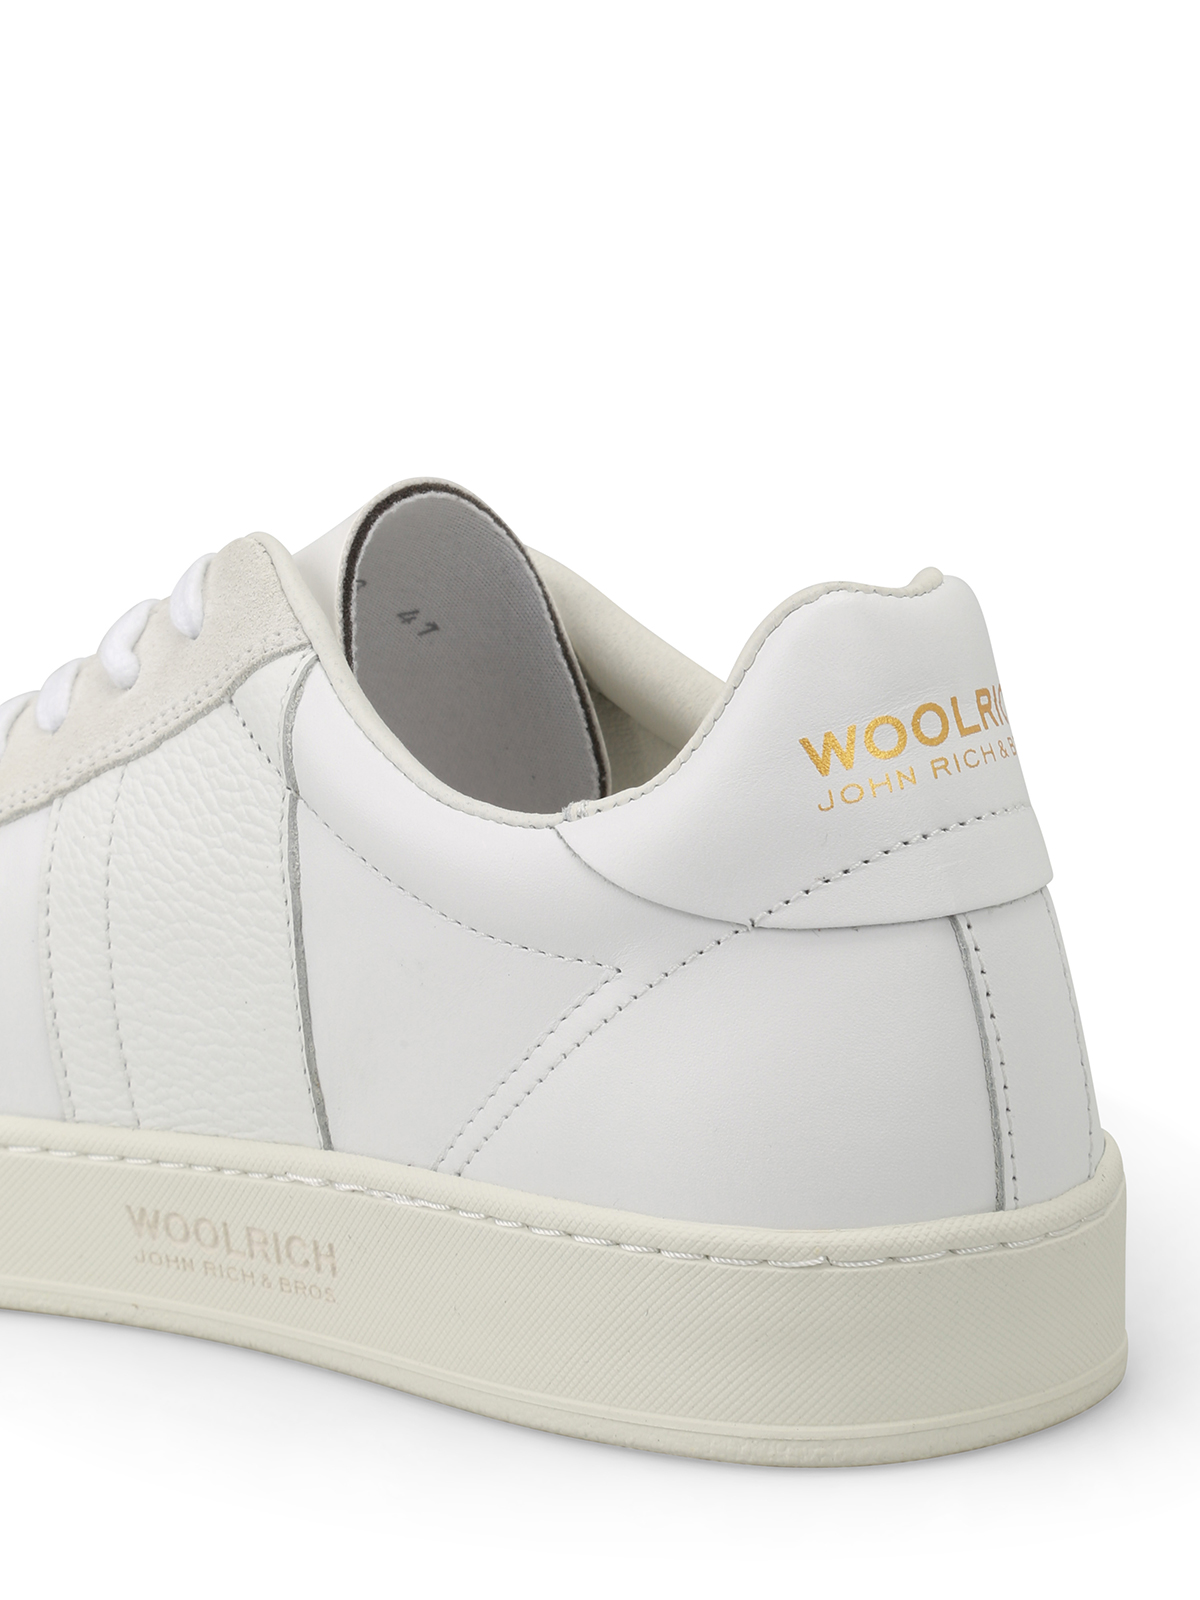 For Cheap Sale Online Woolrich Leather Sneakers Clearance Pre Order Discount For Nice Sale Best Best Store To Get For Sale TKUGdr